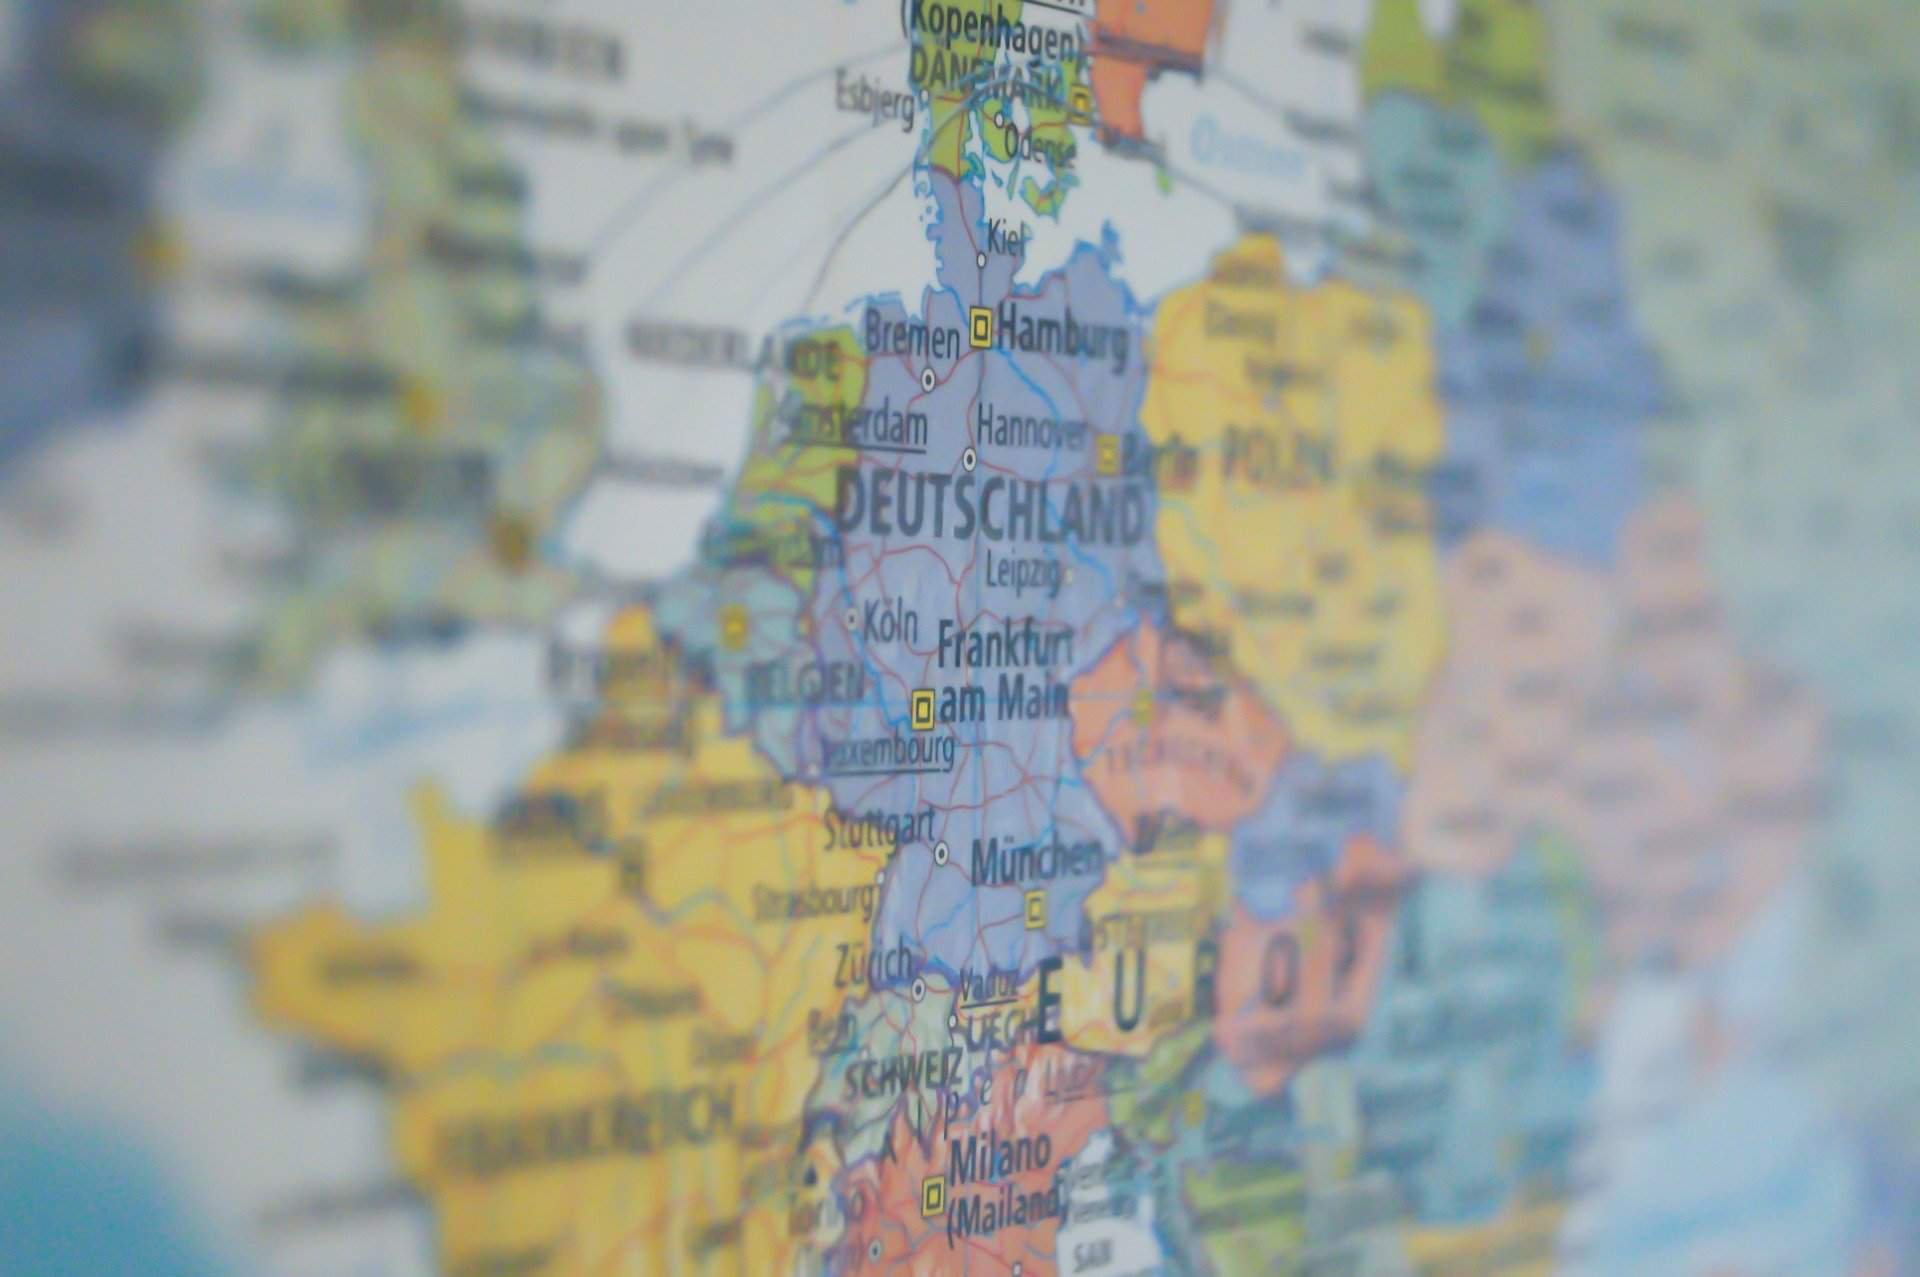 EU's youth is the most affected by the region's crises